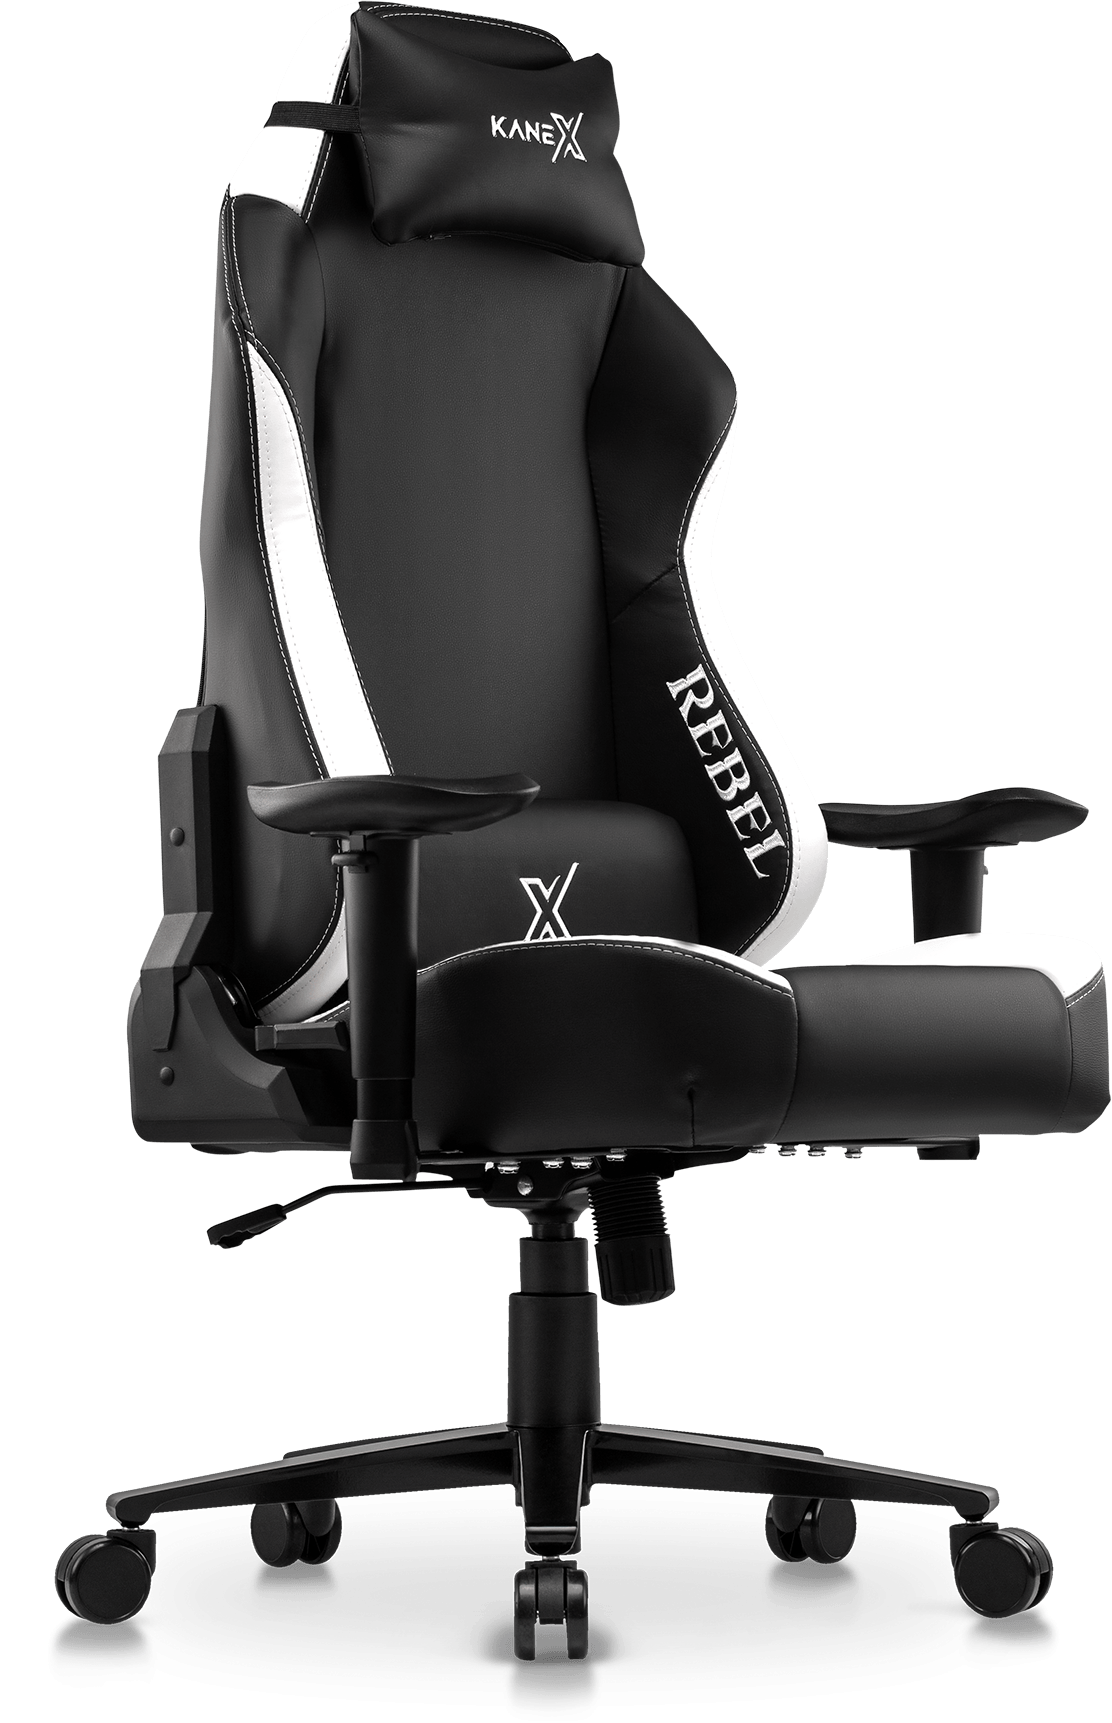 Rebel Professional Gaming Chair in Premium PU Leather in Full Black.